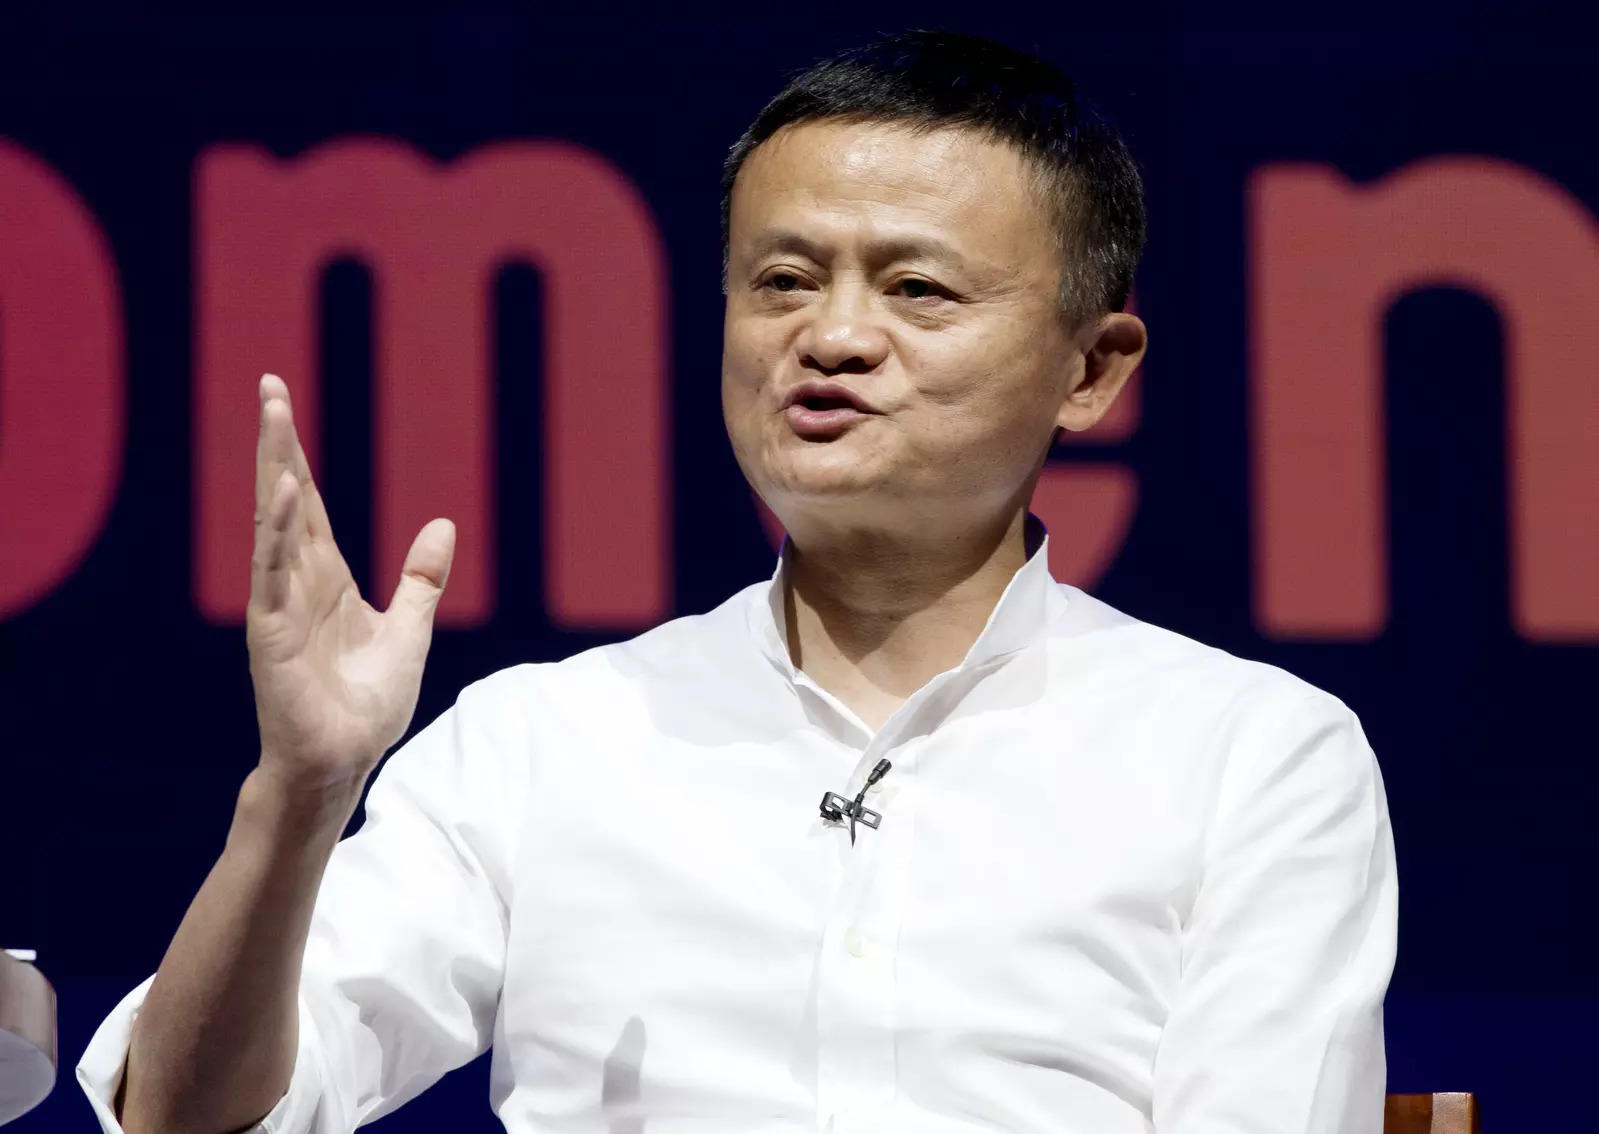 Jack Ma: Tycoon who soared on China's tech dreams grounded by regulators